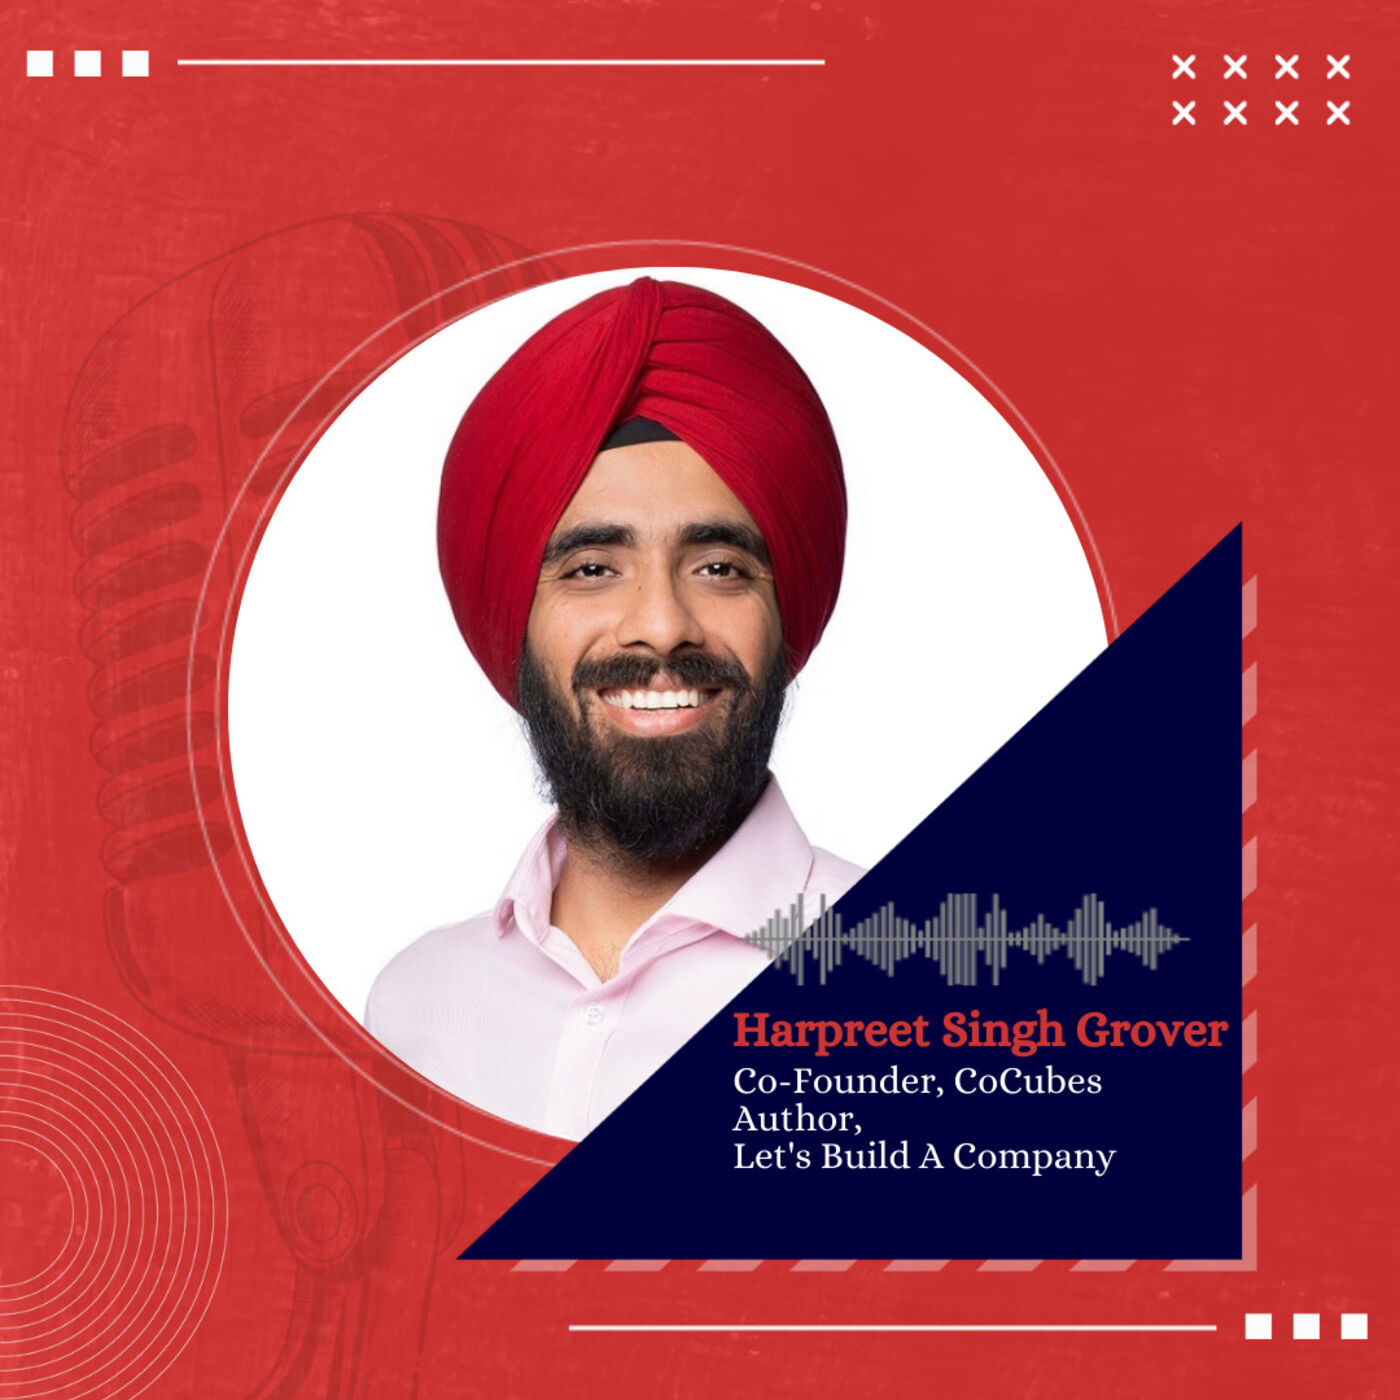 Inside the mind of Harpreet Singh Grover, Co-Founder, CoCubes, & Author, Let's Build a Company